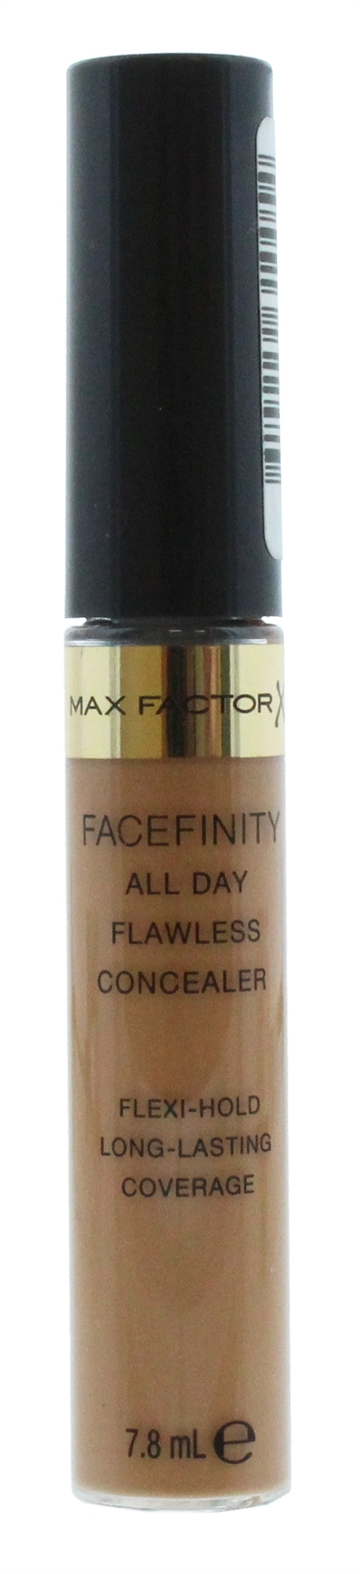 Max Factor Facefinity Concealer 080